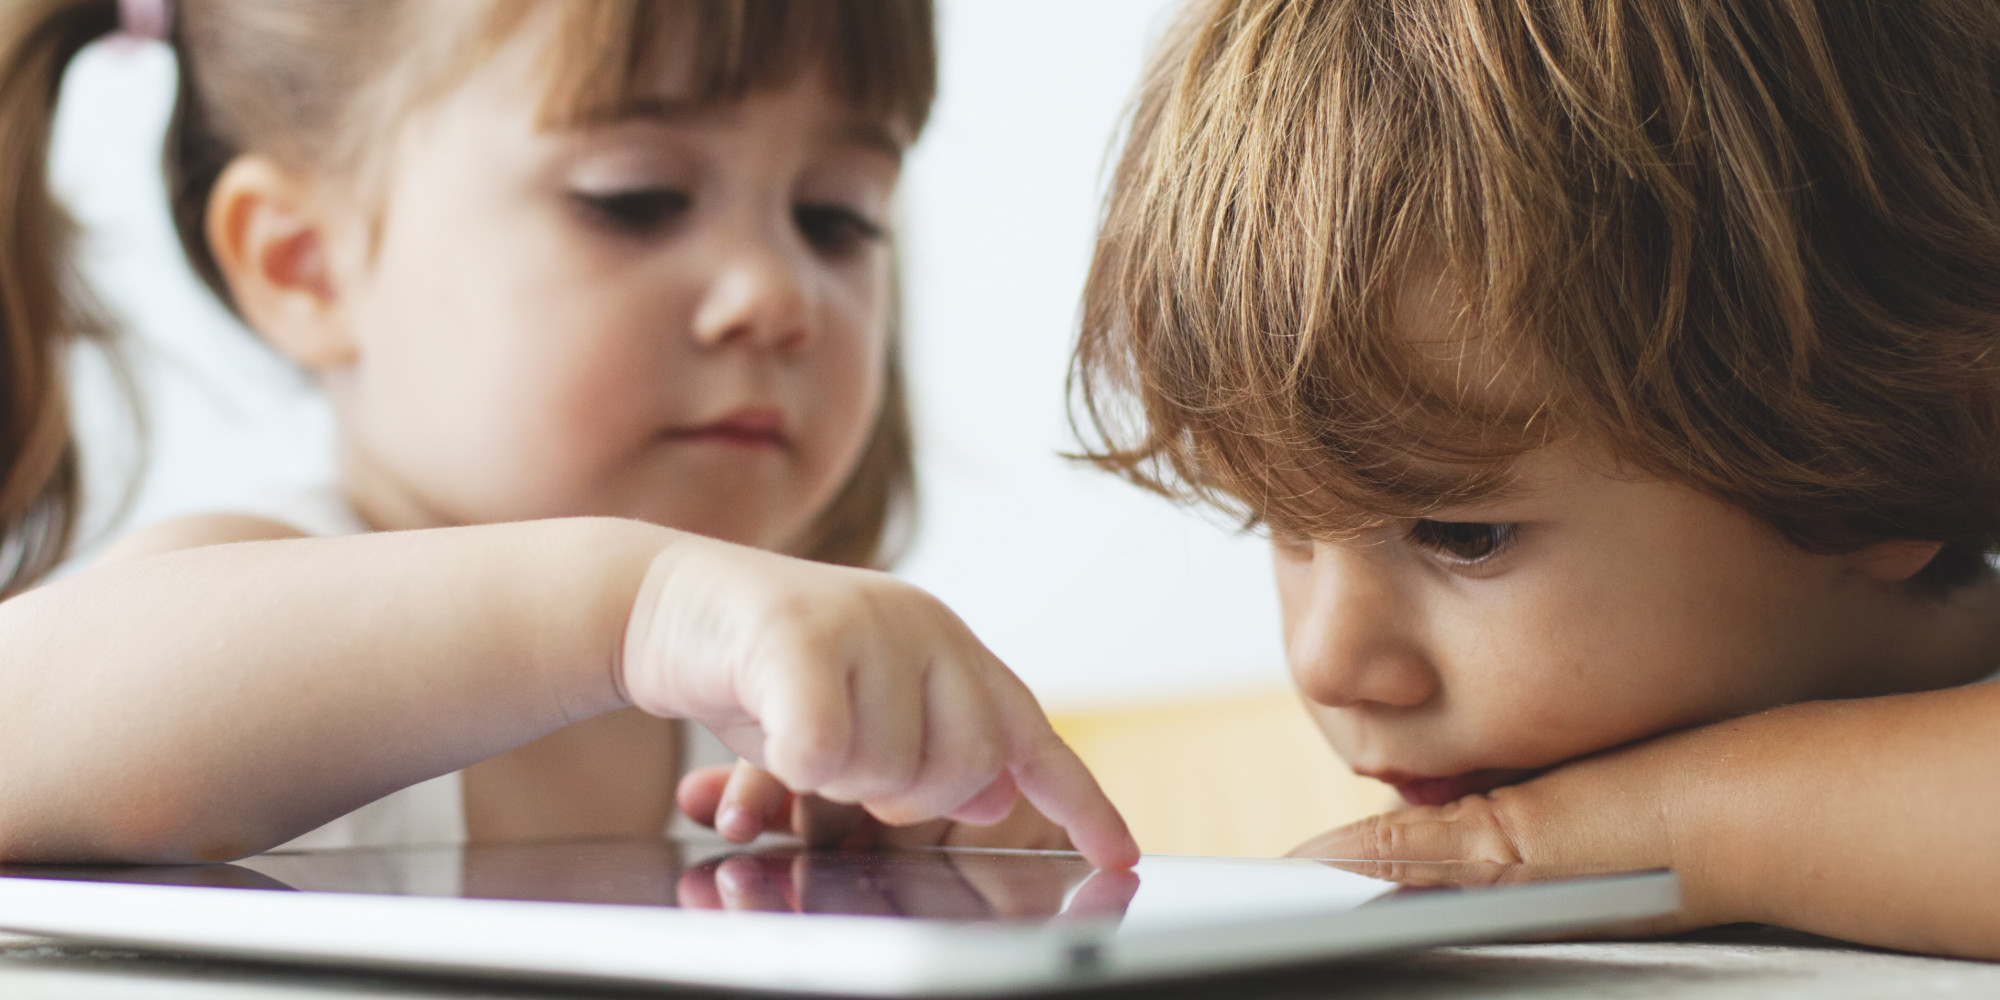 6 tips to child proof your Smartphone